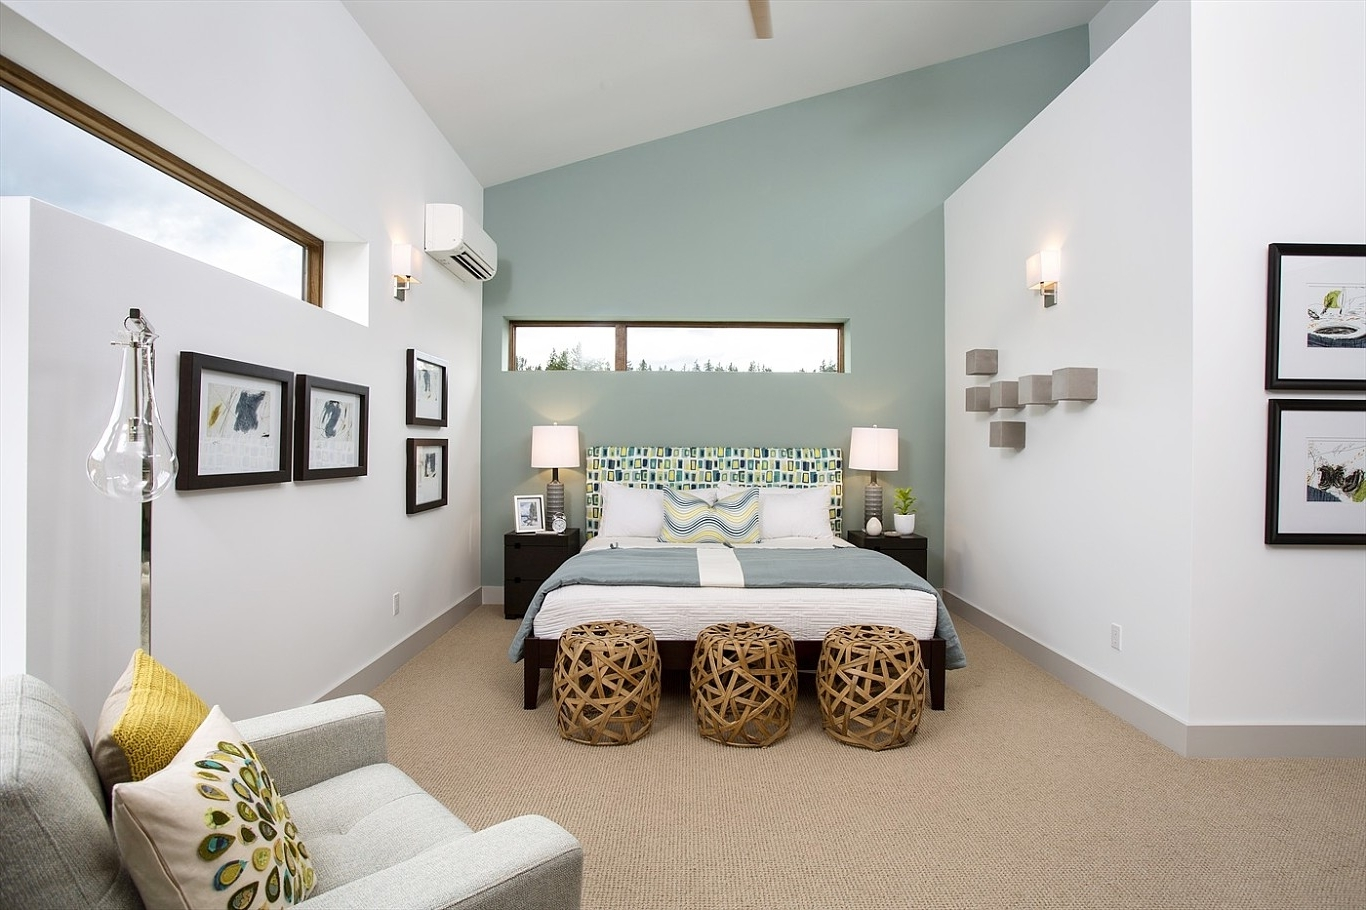 Trendy Accent Wall Paint Pattern Ideas Houzz Bedroom Accent Wall Blue And In Gray Wall Accents (View 12 of 15)